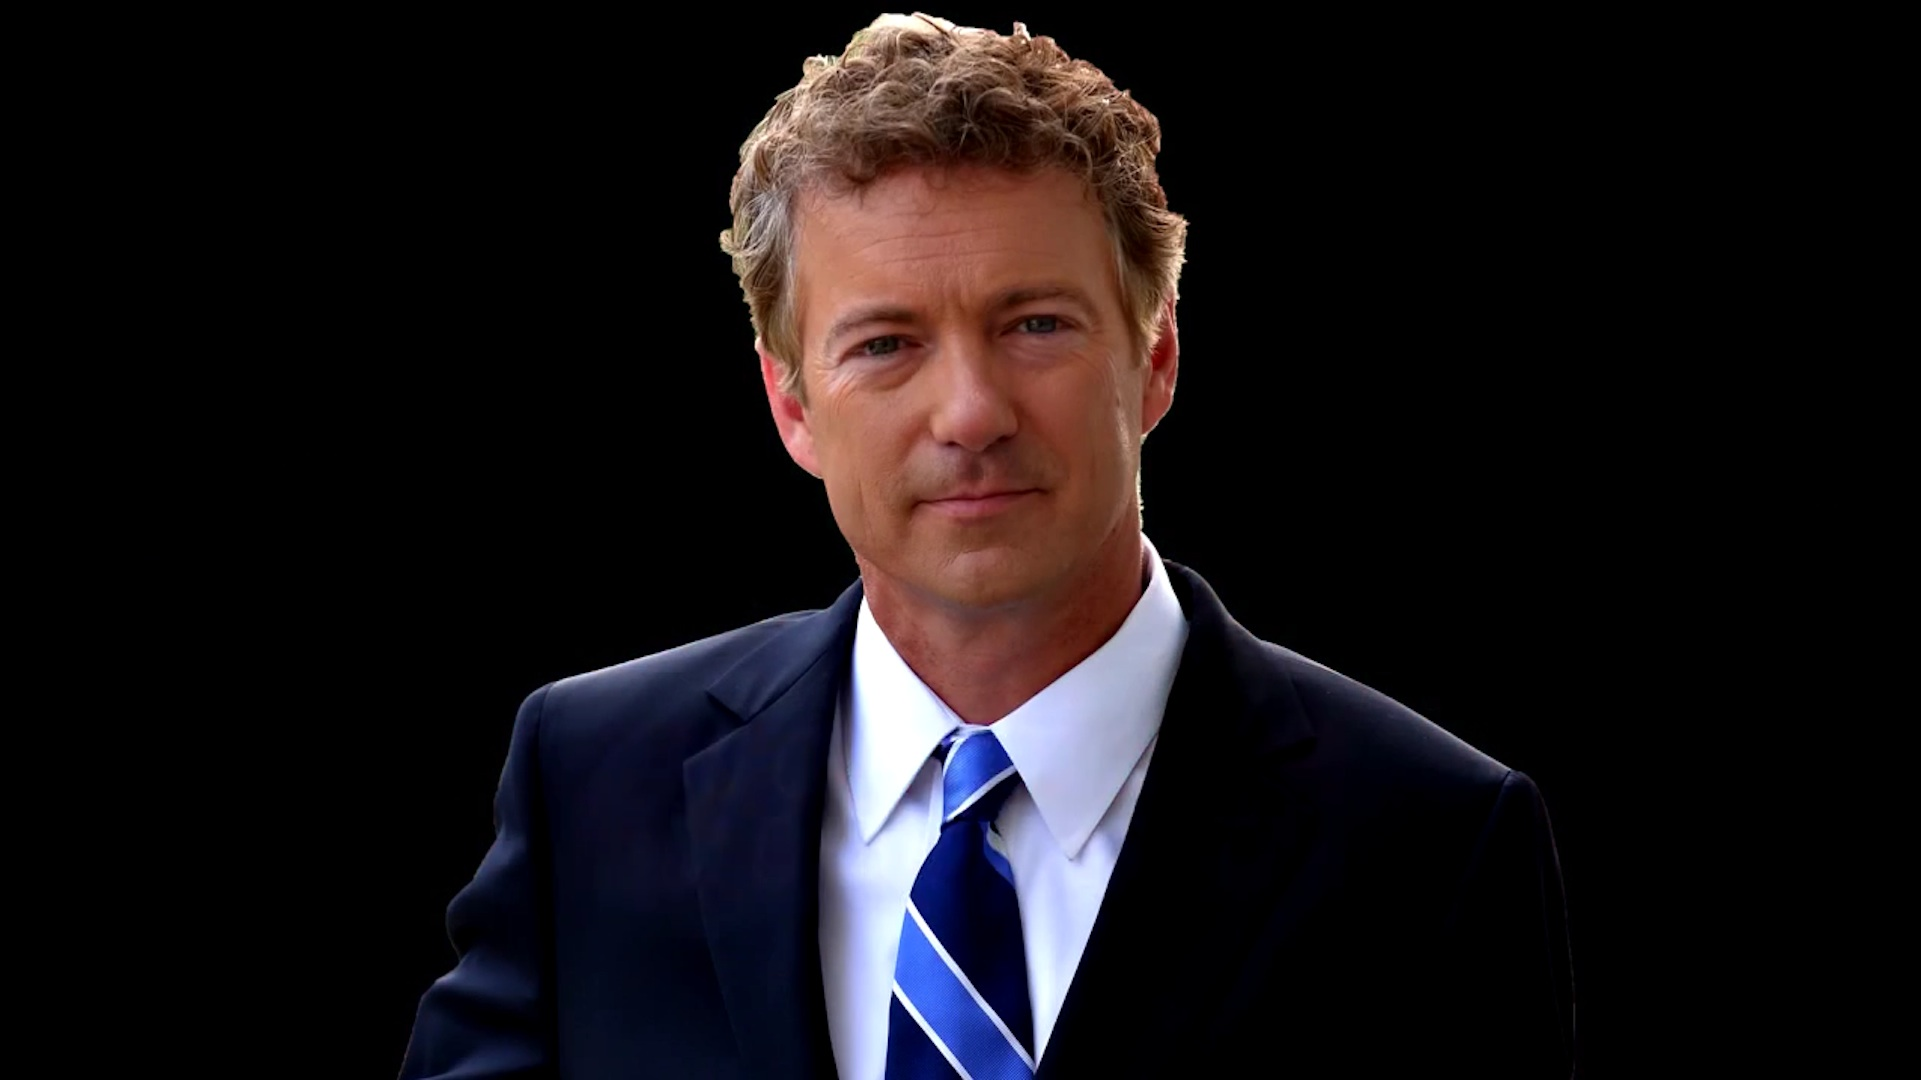 rand paul archives the libertarian republic rand paul on syria military action must have congressional approval